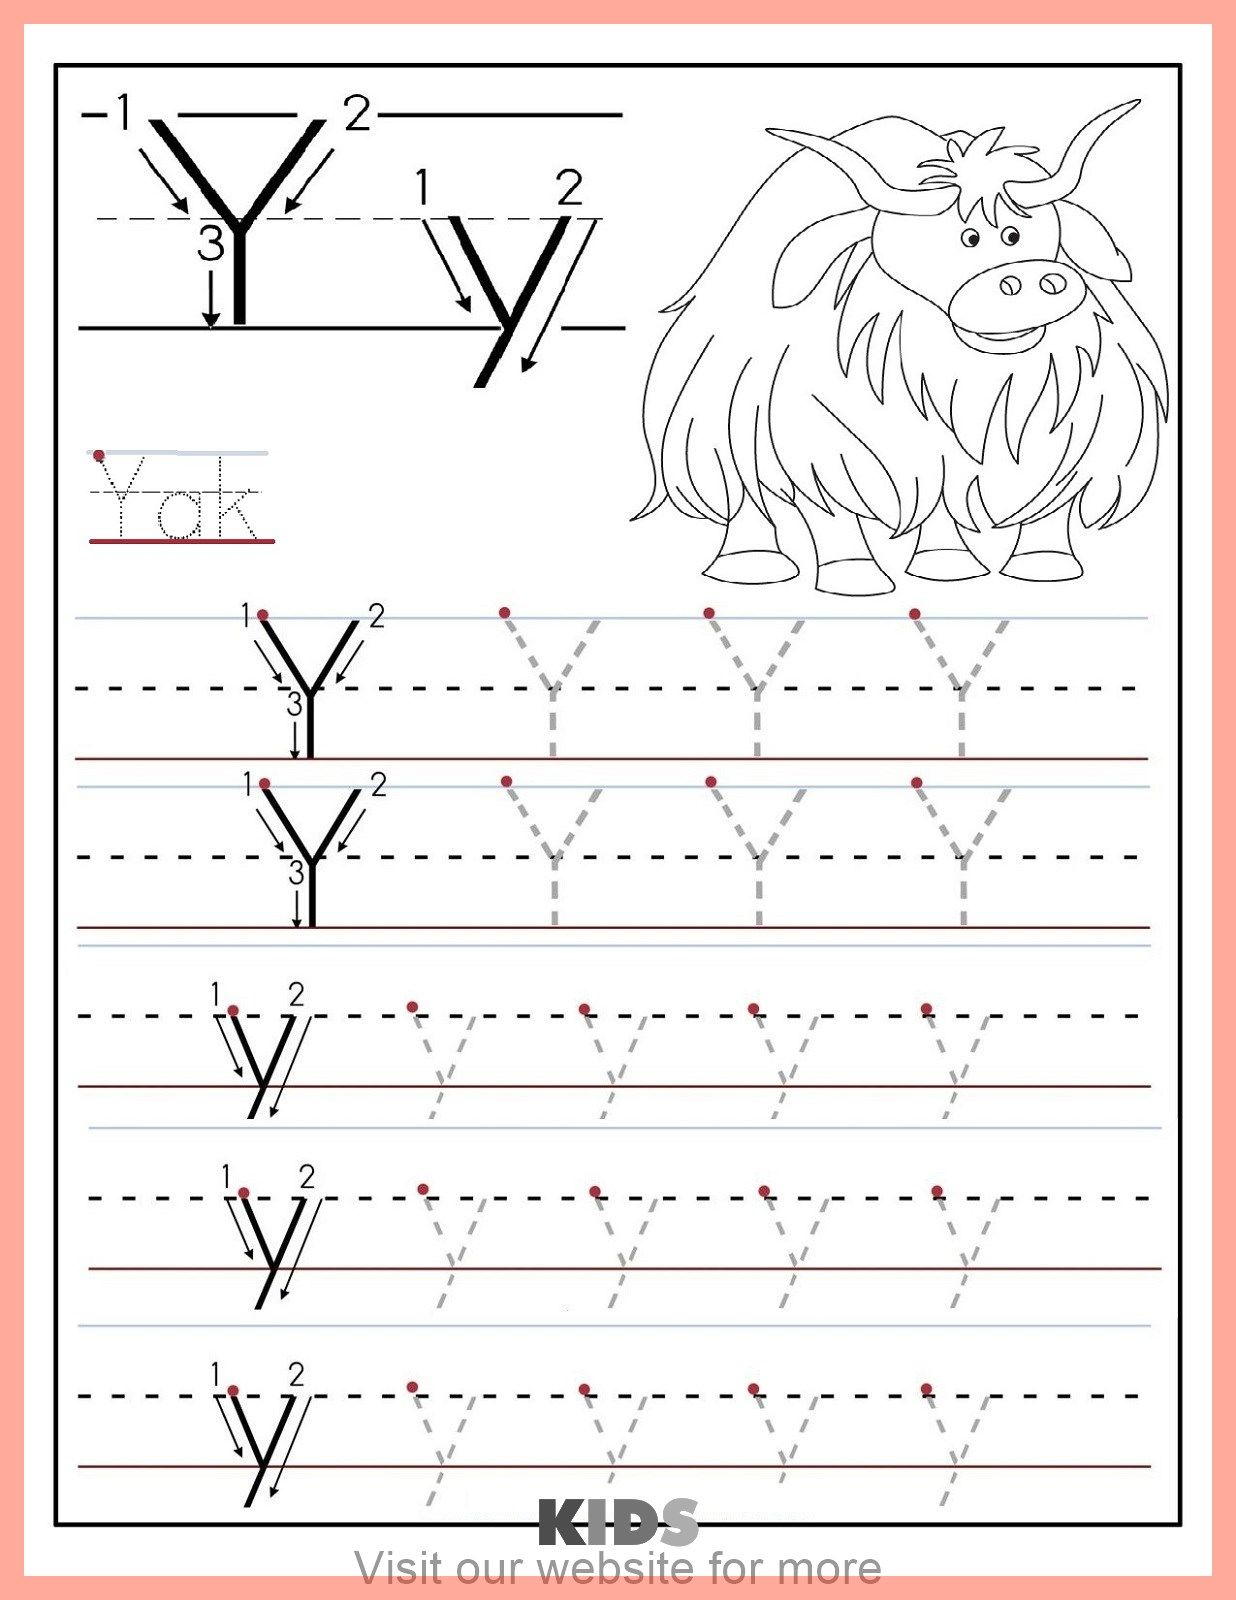 Coloring Pages For Toddlers In